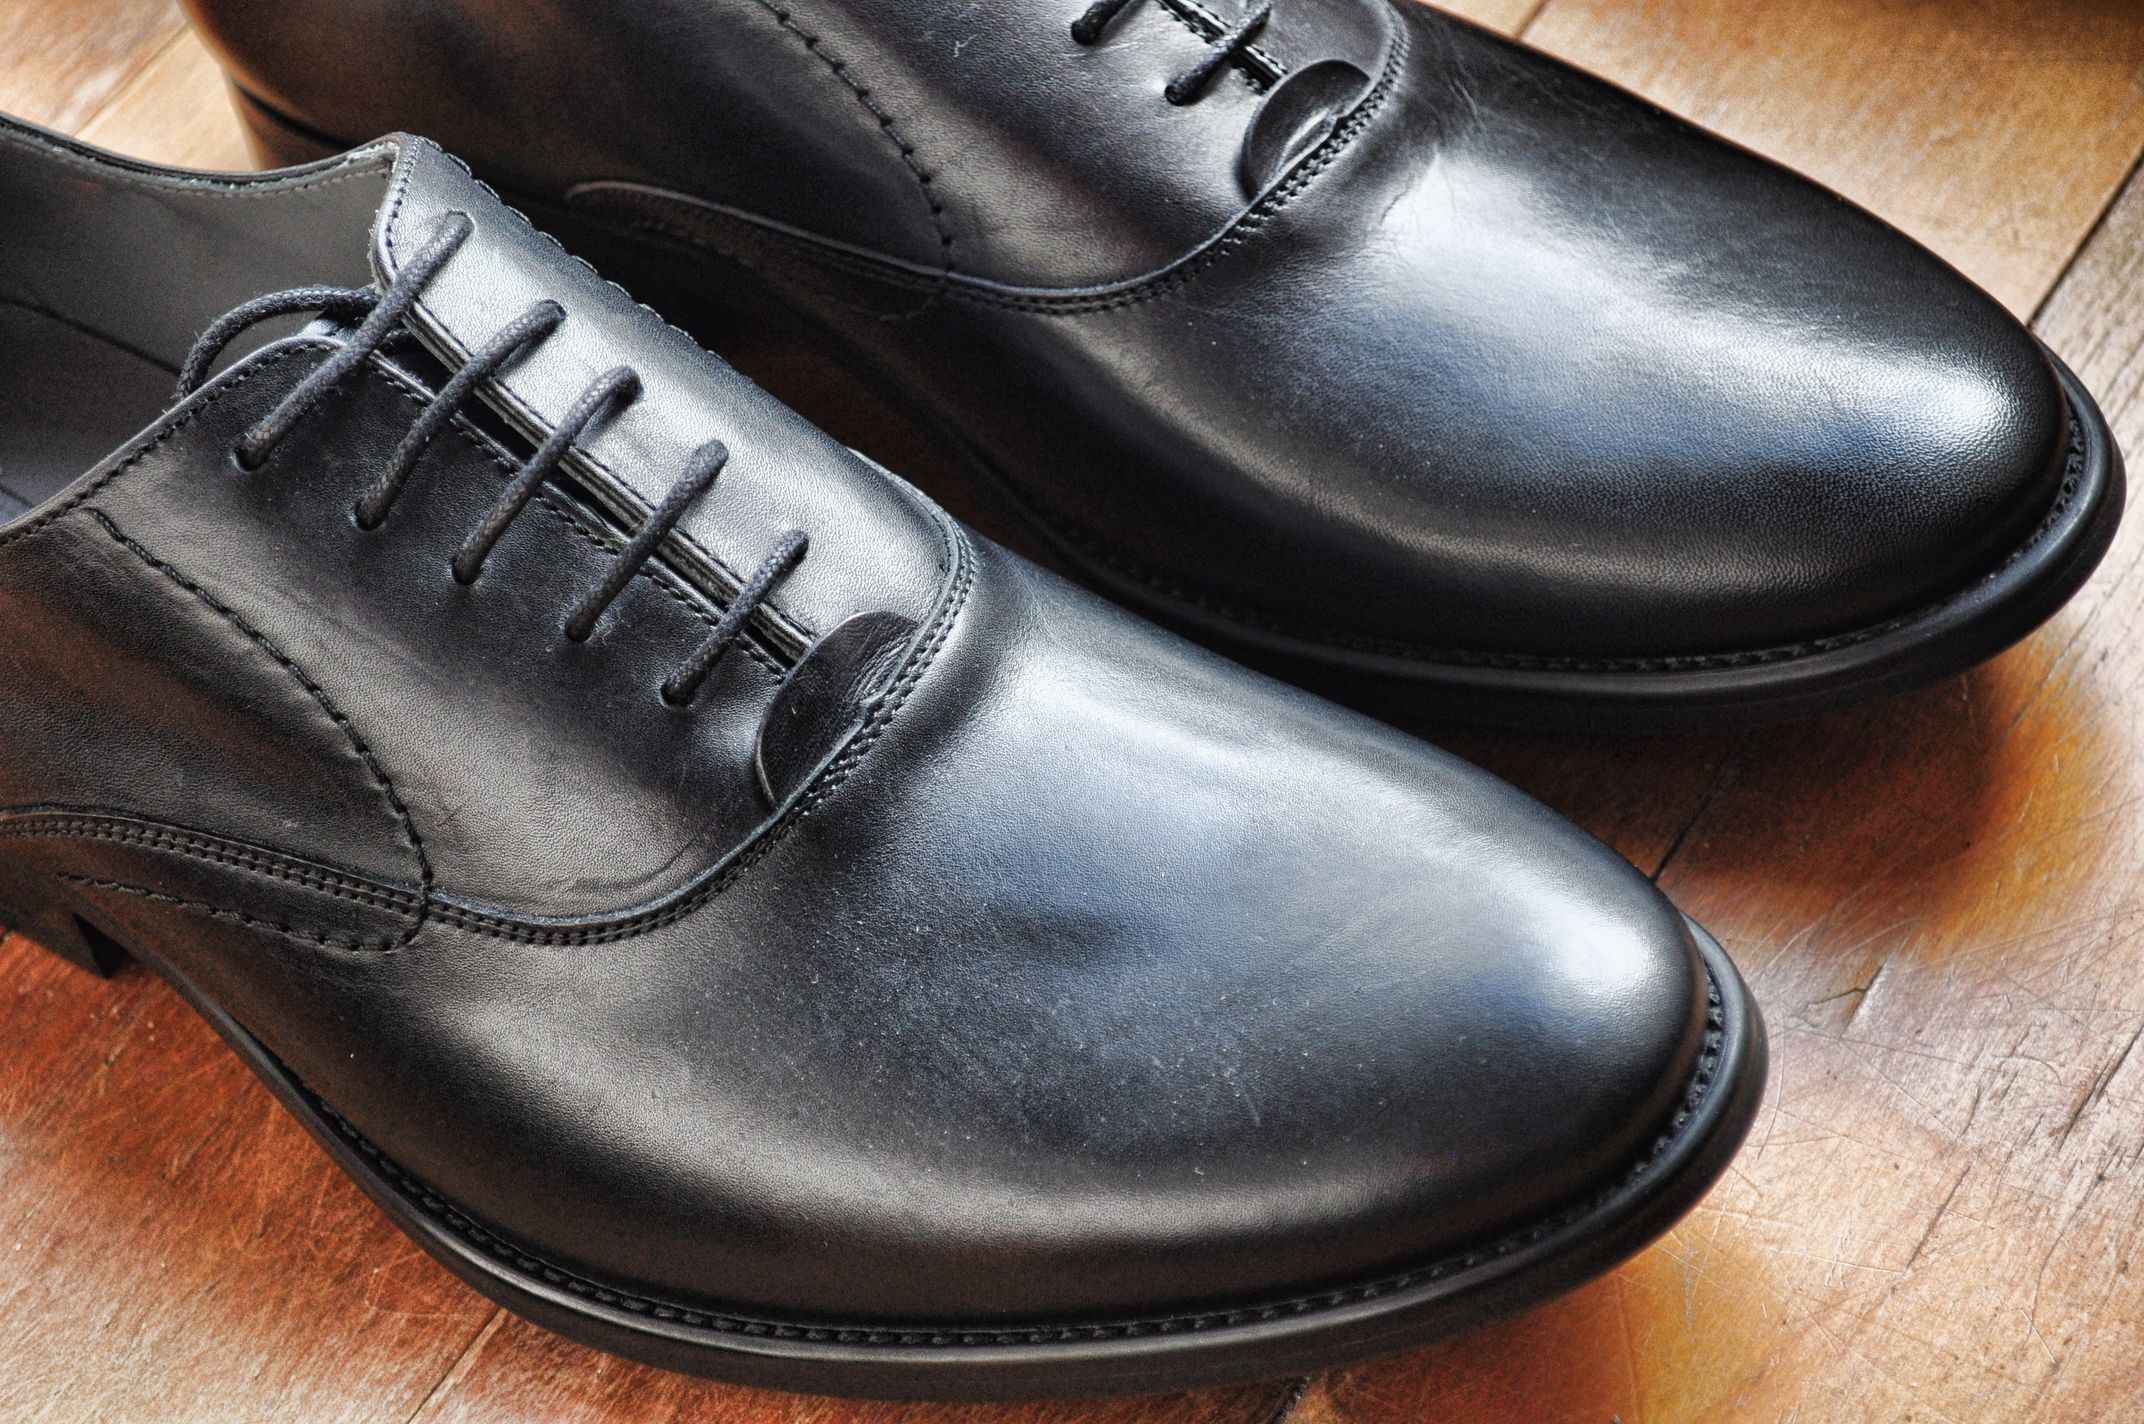 A pair of black swan neck oxford dress shoes